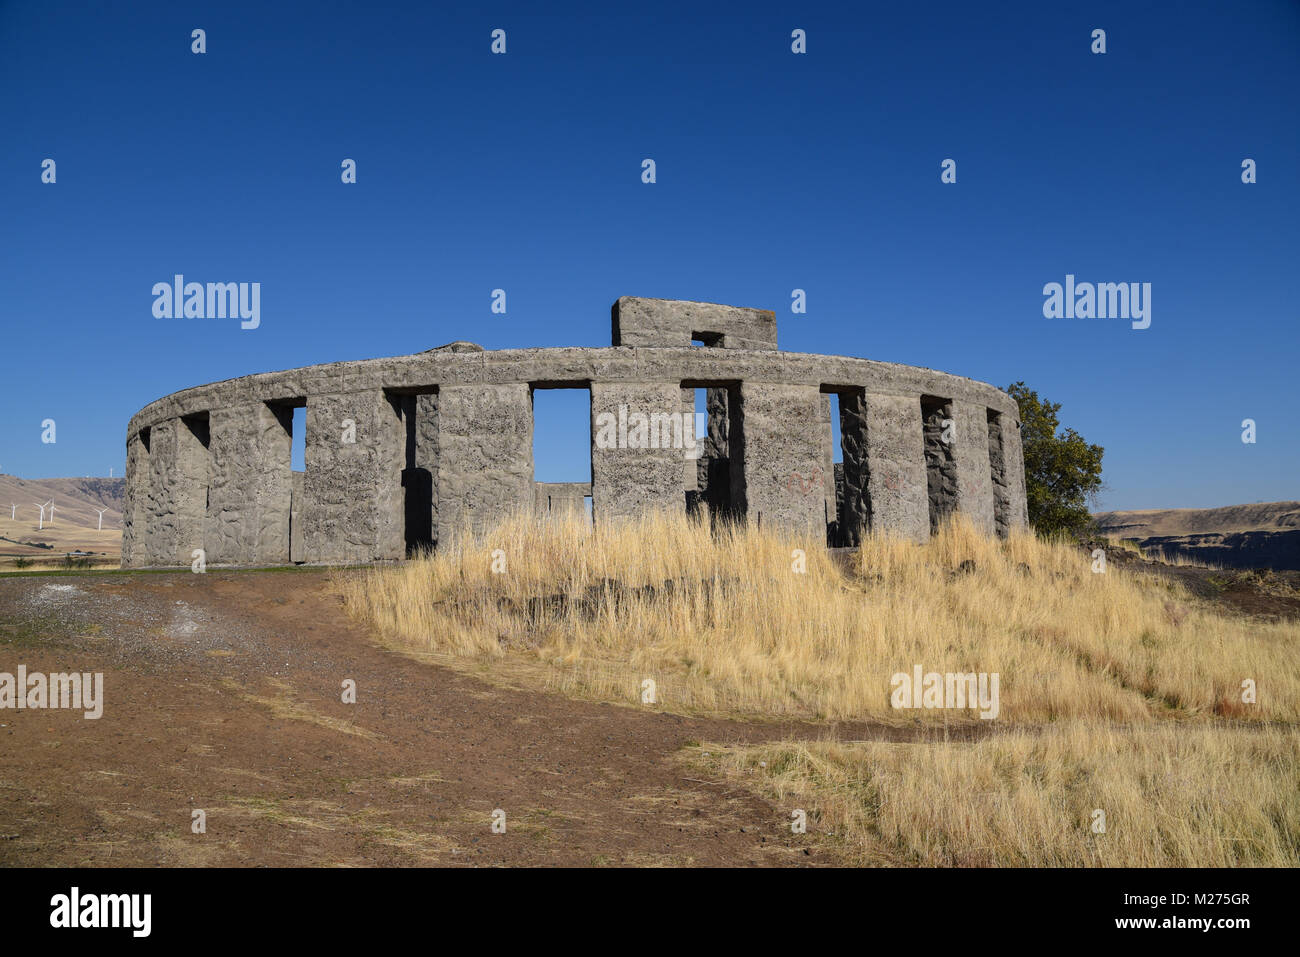 Maryhill Stonehenge replica of the English ancient site structure in Maryhill, Washington state, USA built as memorial Stock Photo